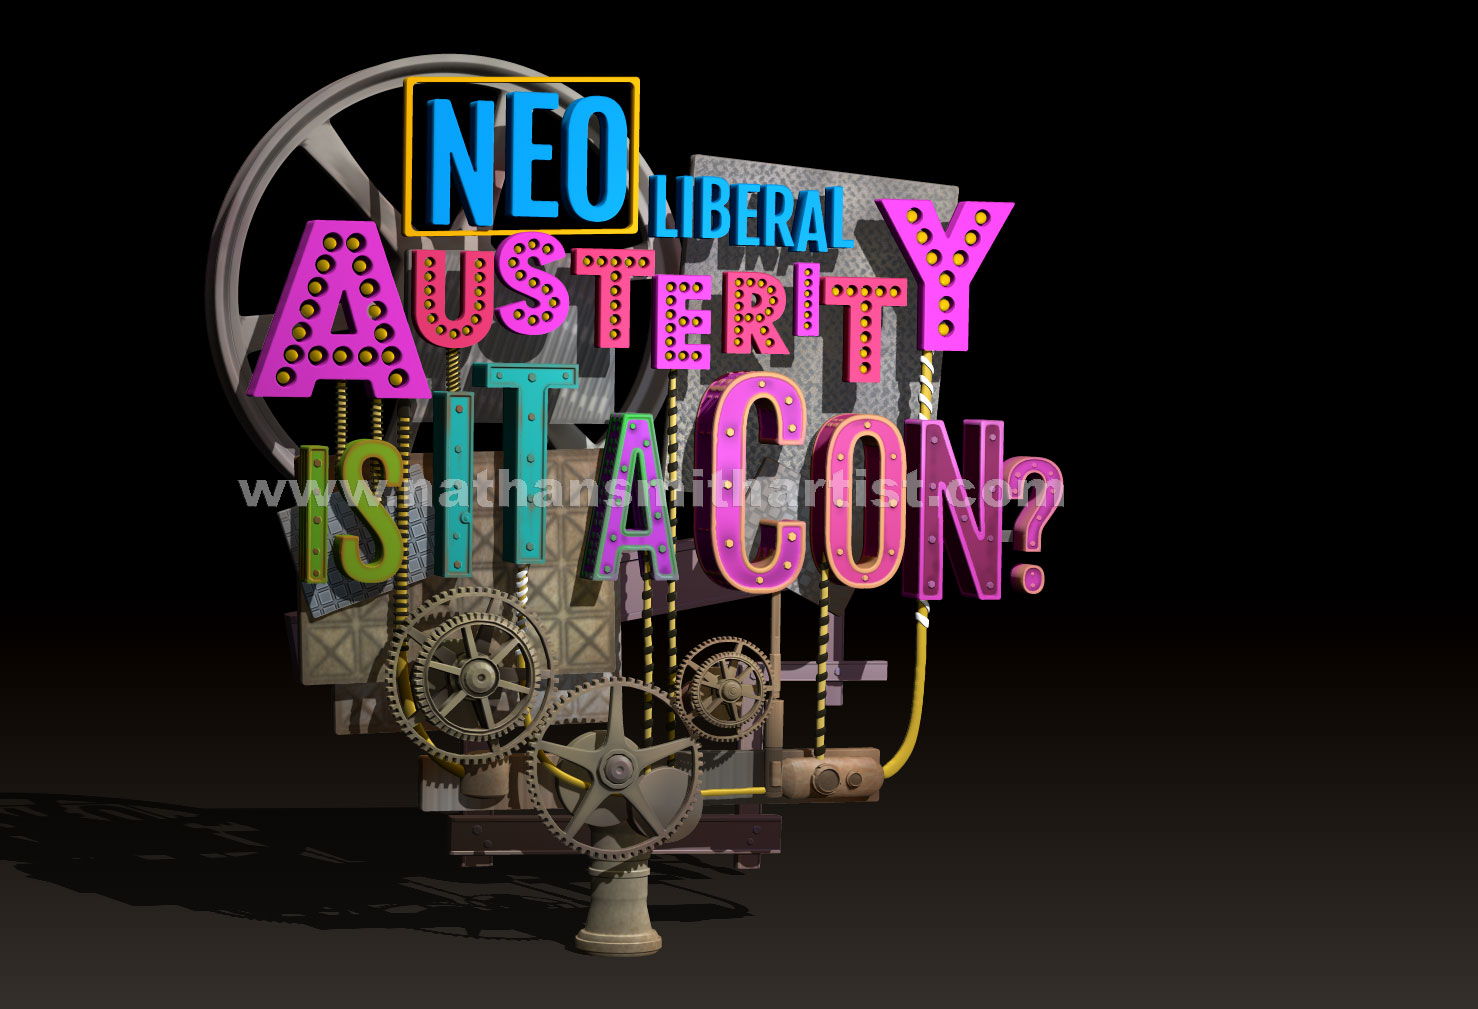 Austerity neoliberal Nathan smith